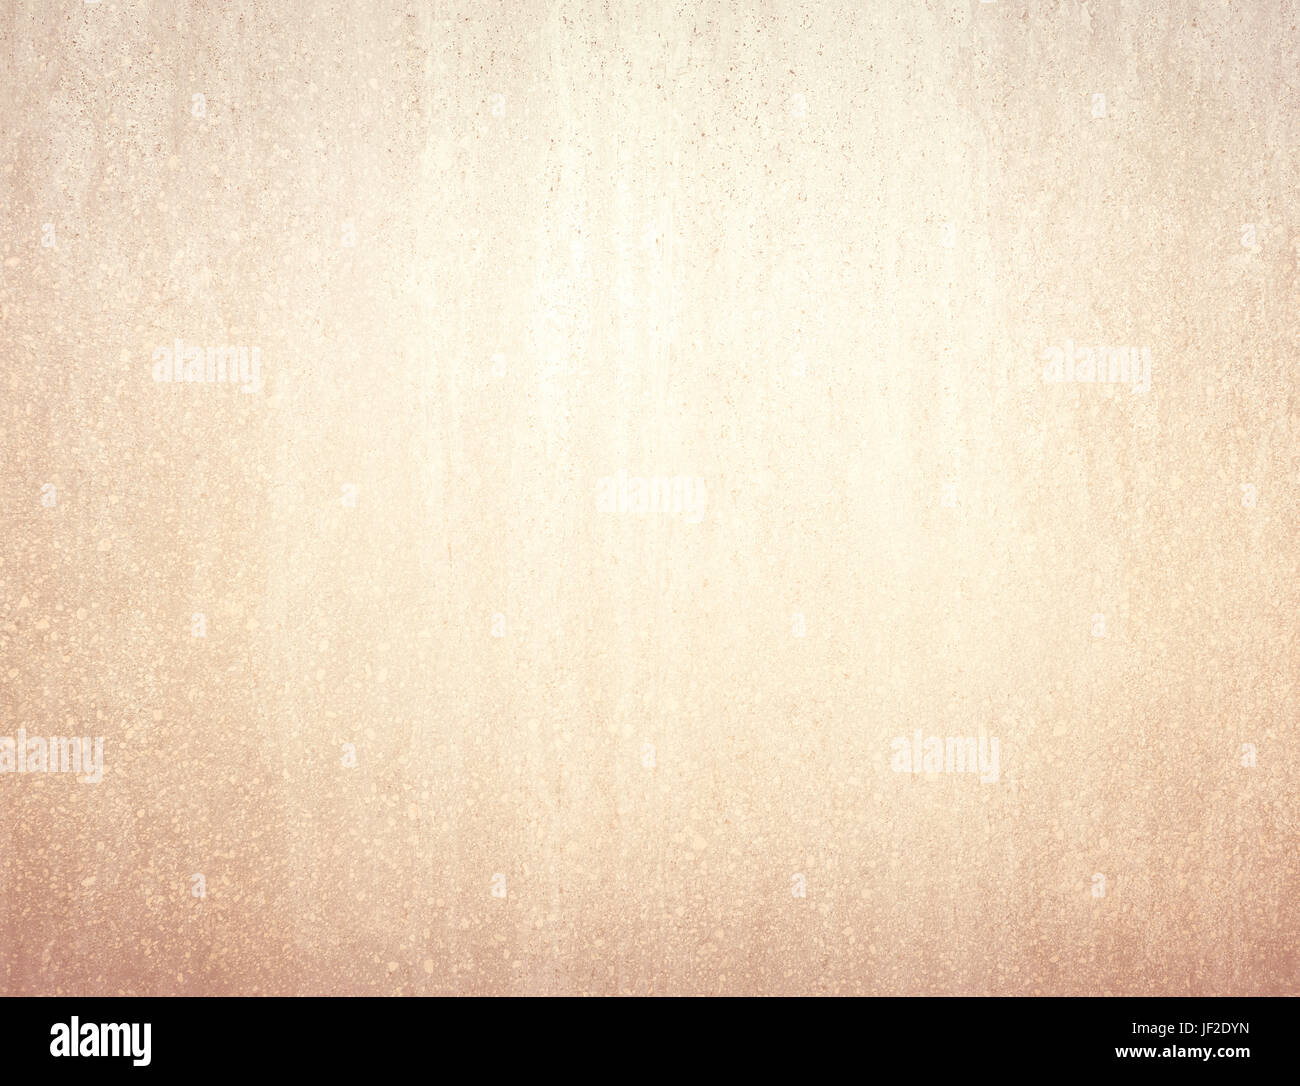 Old blank sheet of paper. Parchment textured background - Vintage material - Stock Image